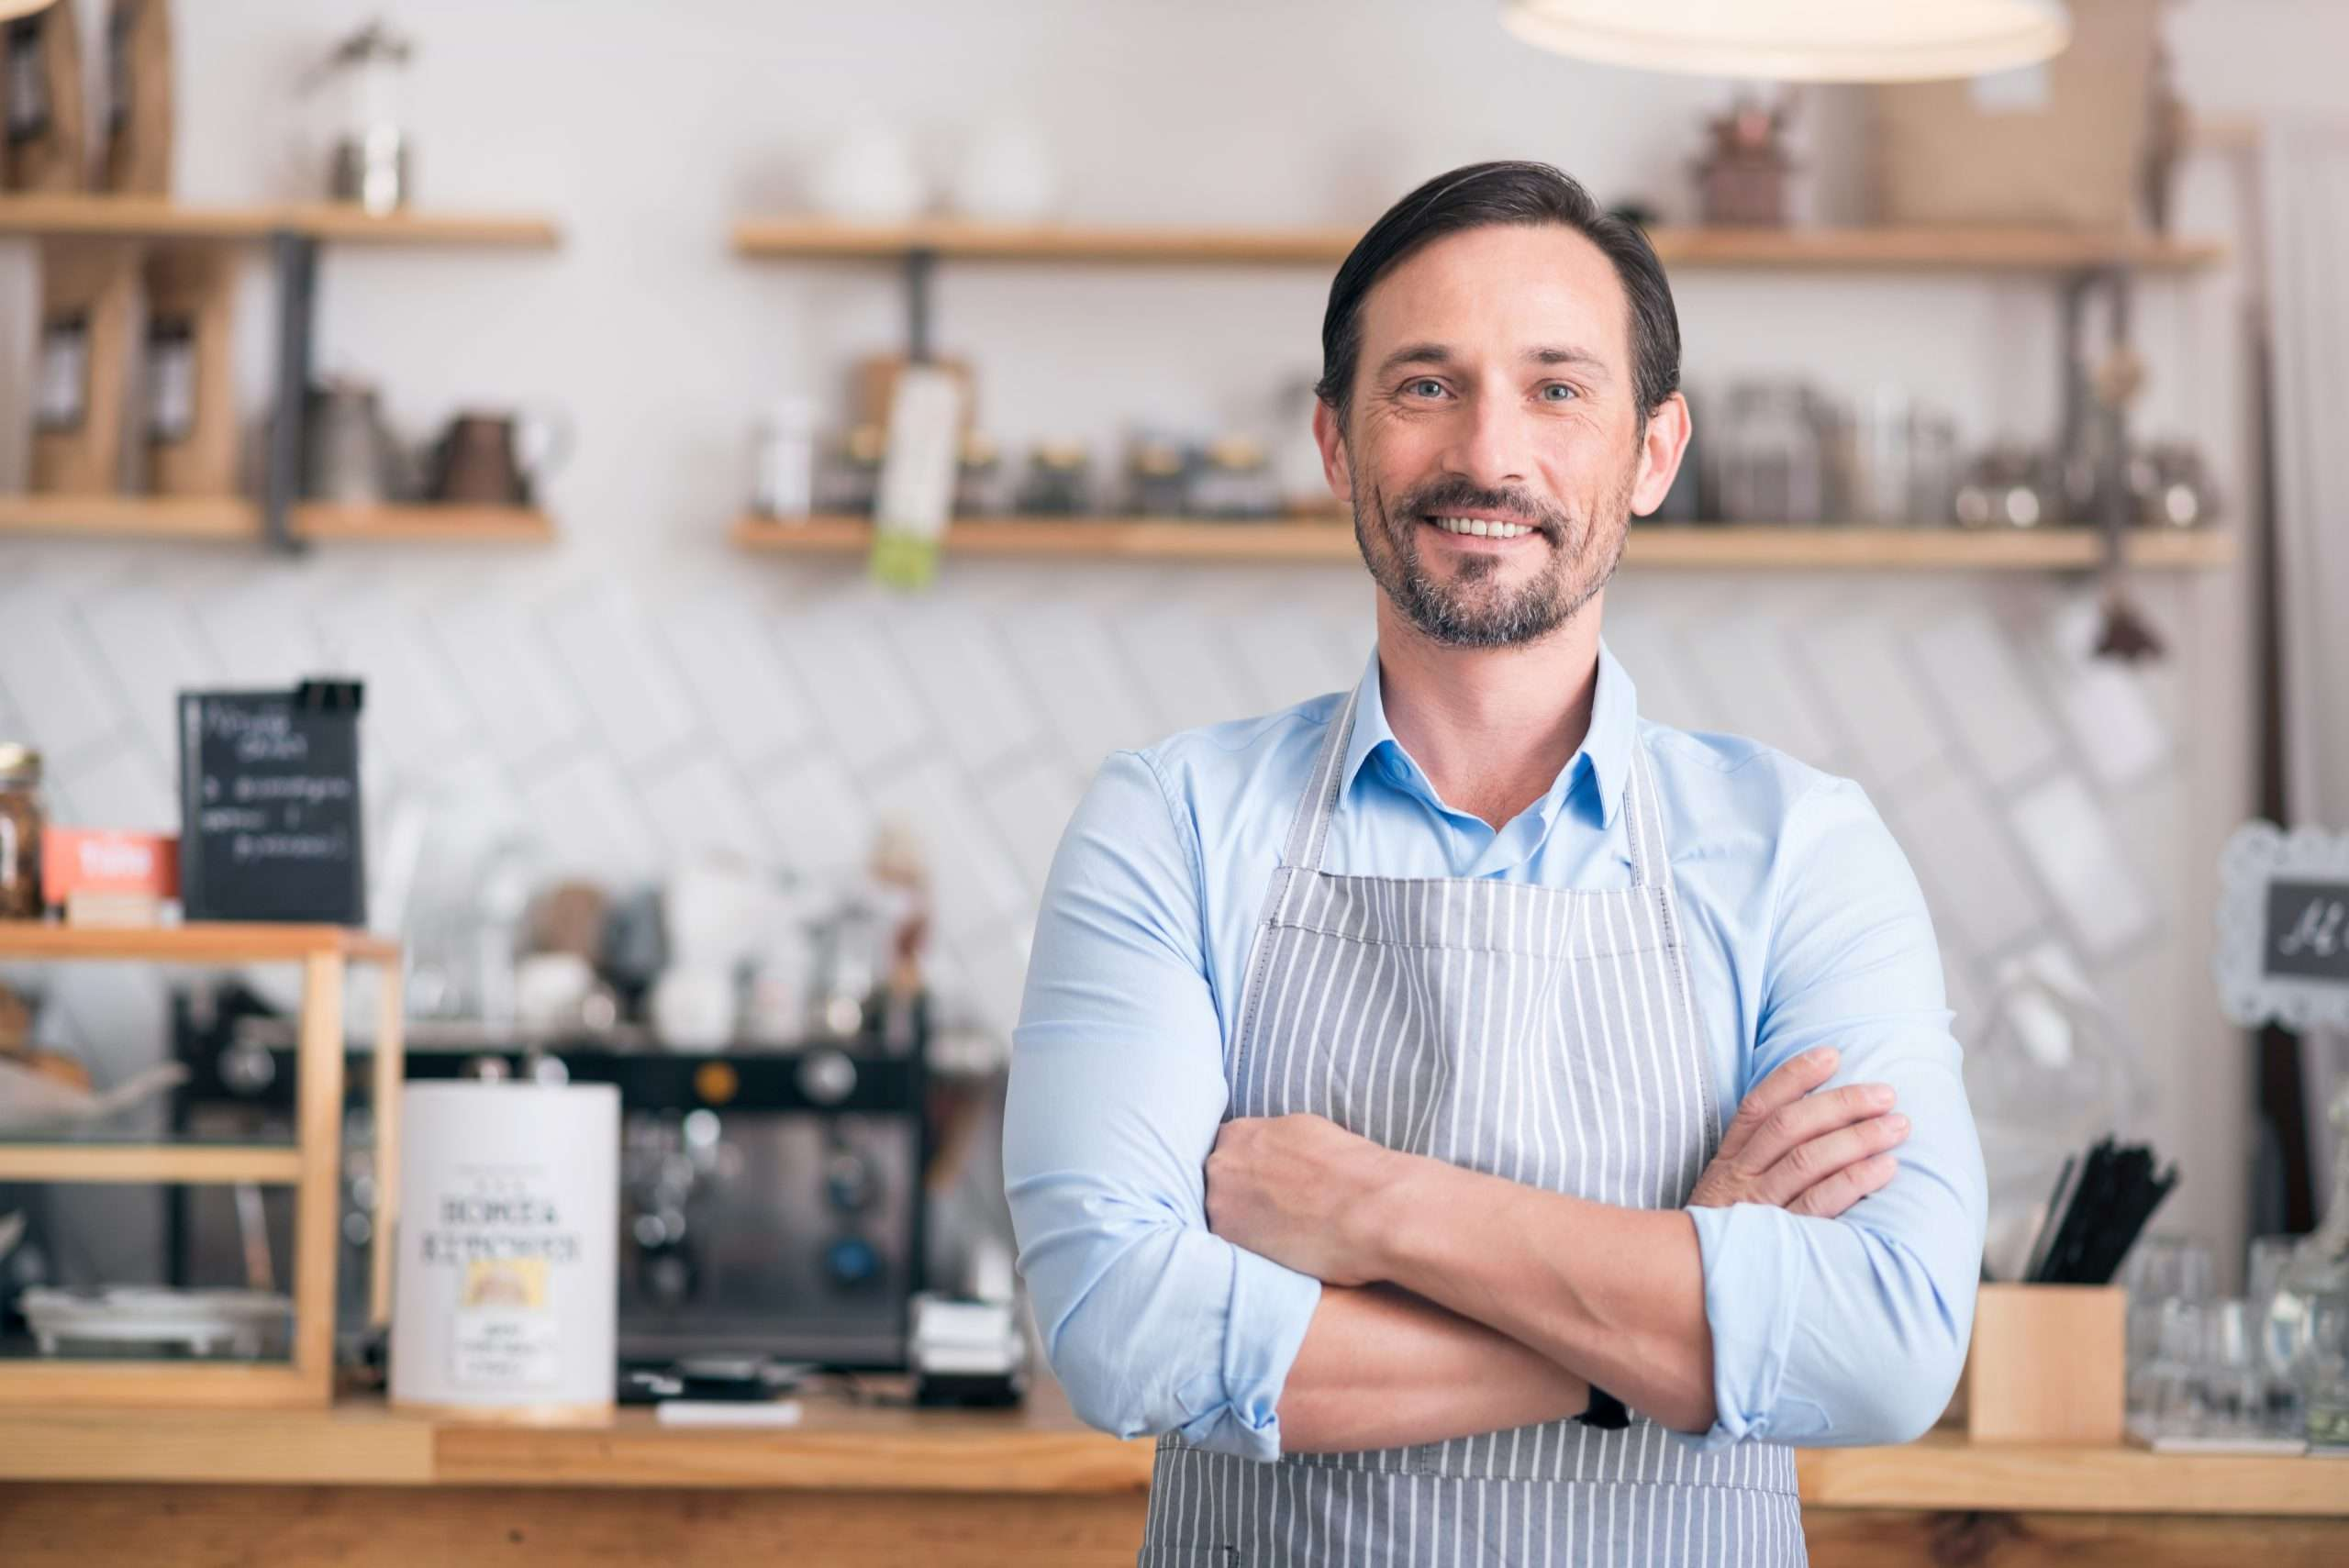 A cafe manager smiles confidently after starting a business